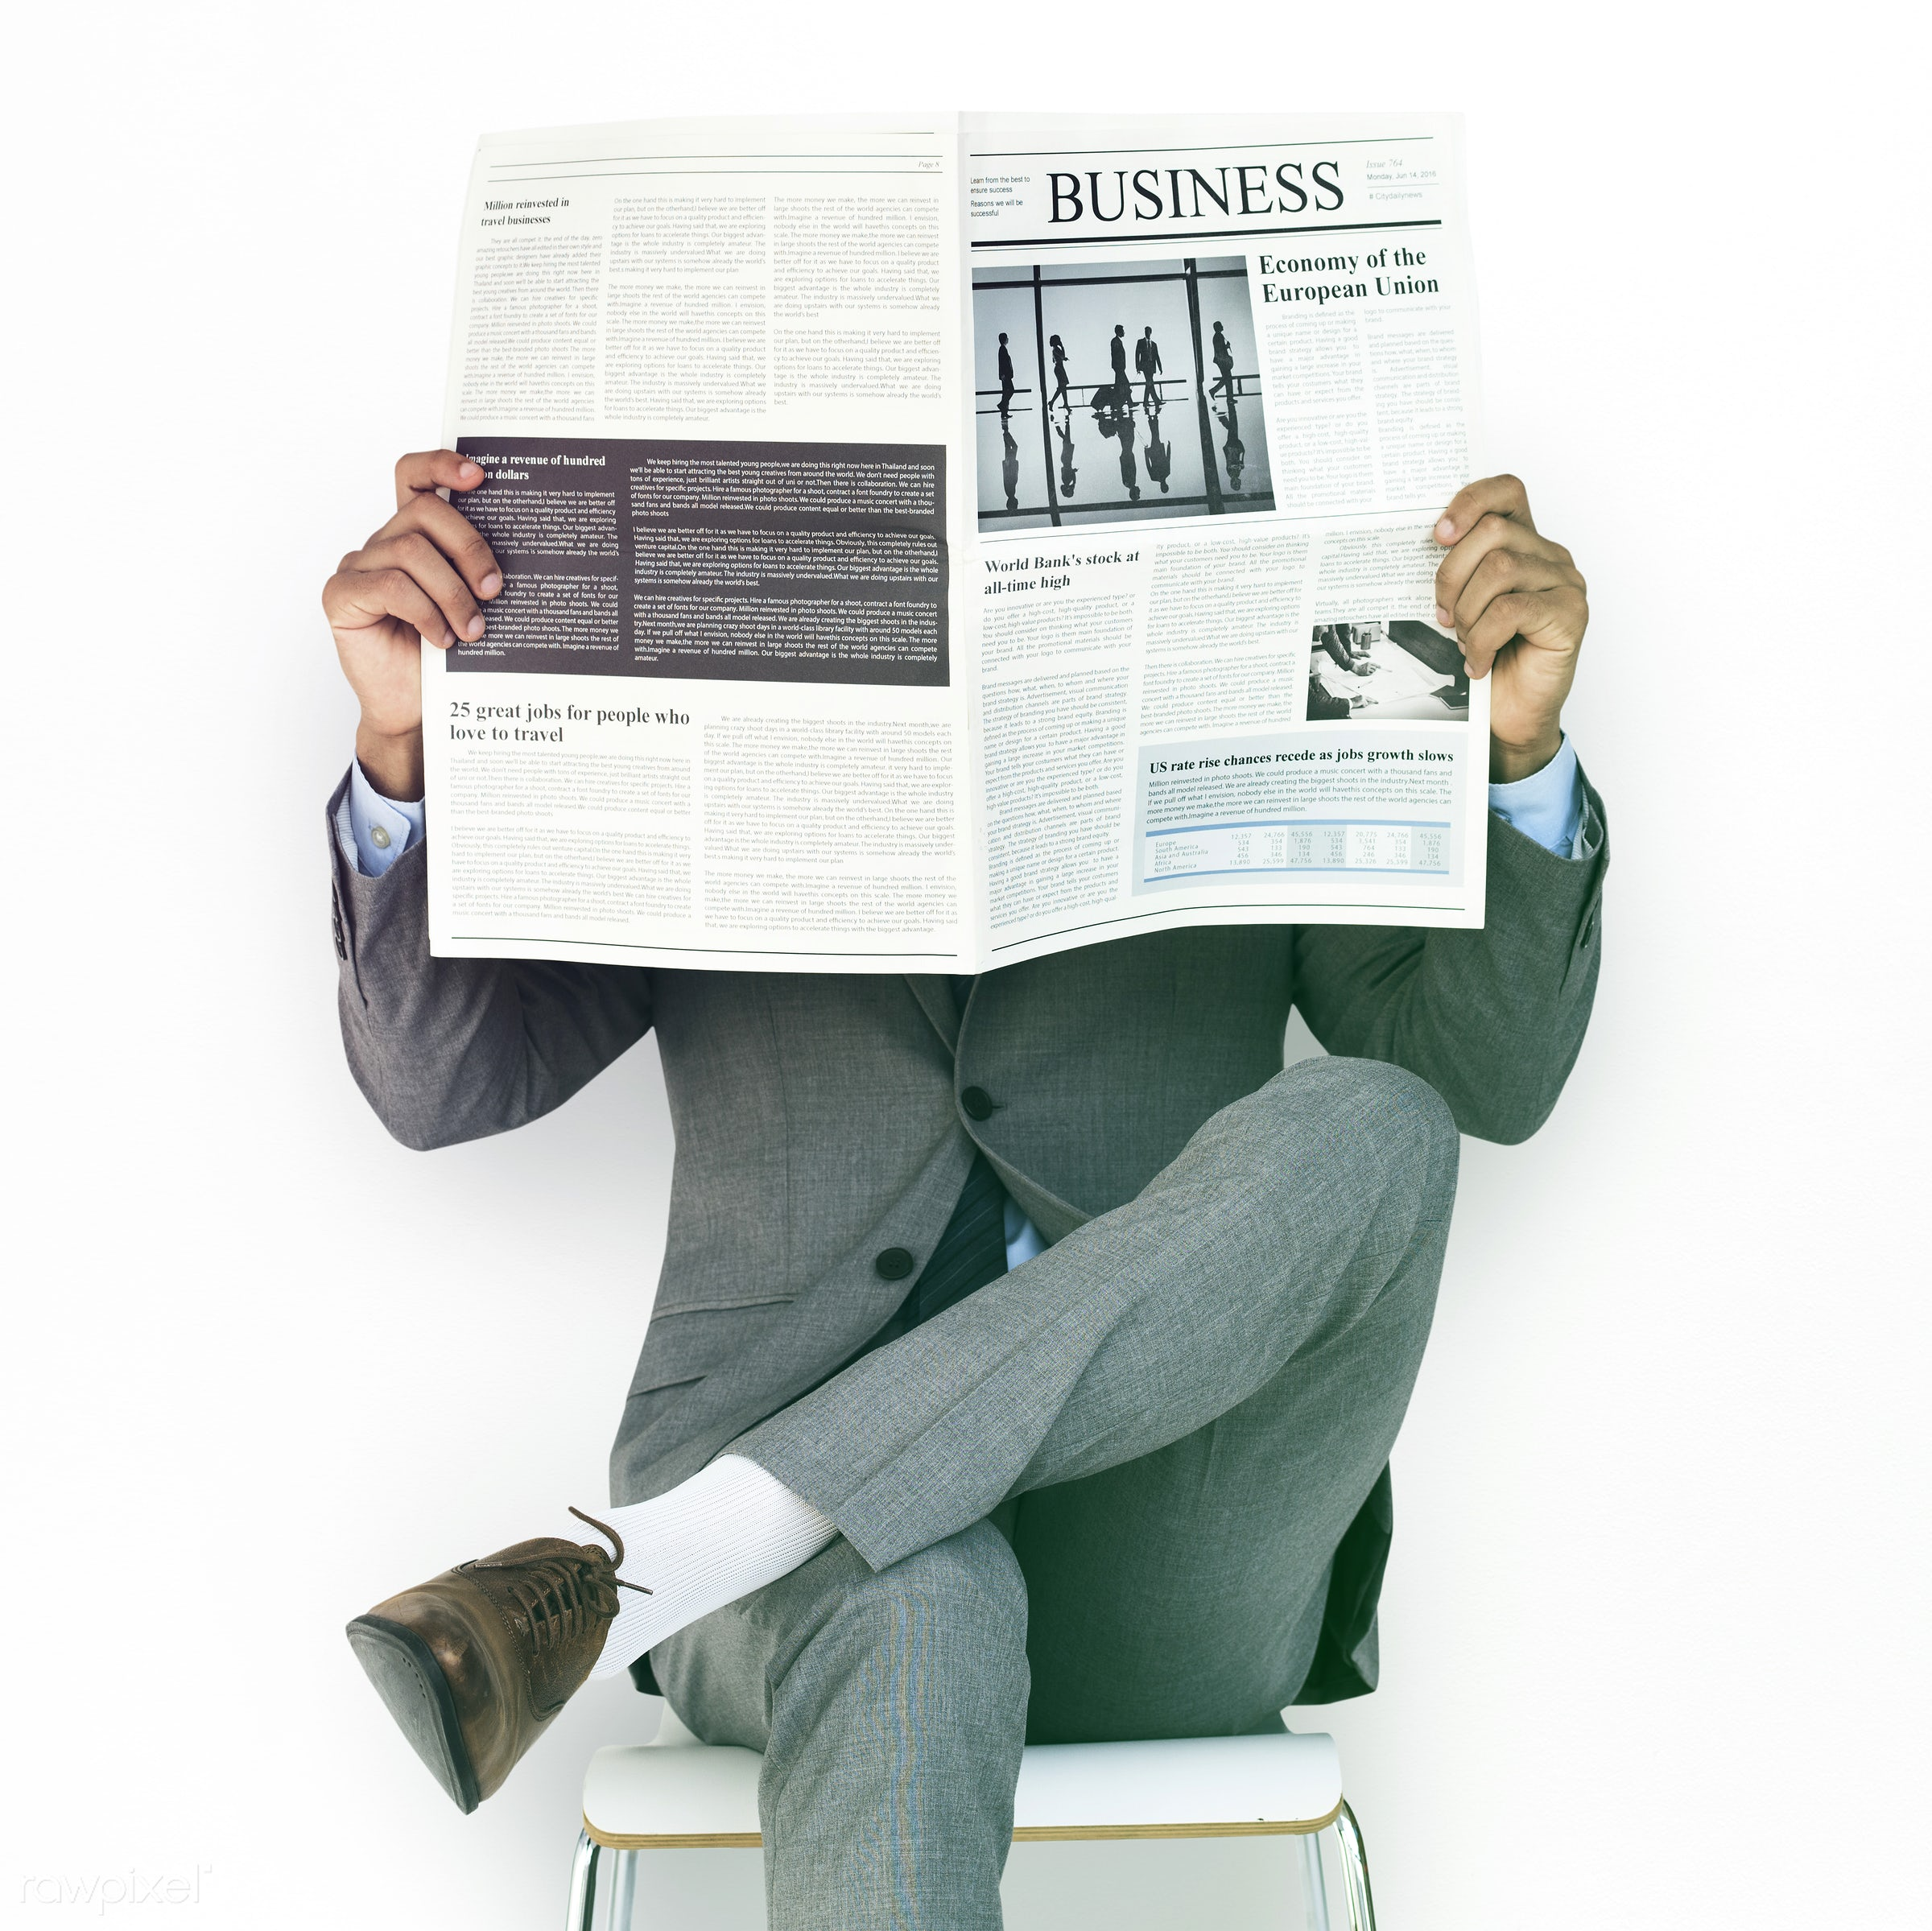 studio, expression, reading, person, business newspaper, business wear, isolated on white, people, formal dressing, business...